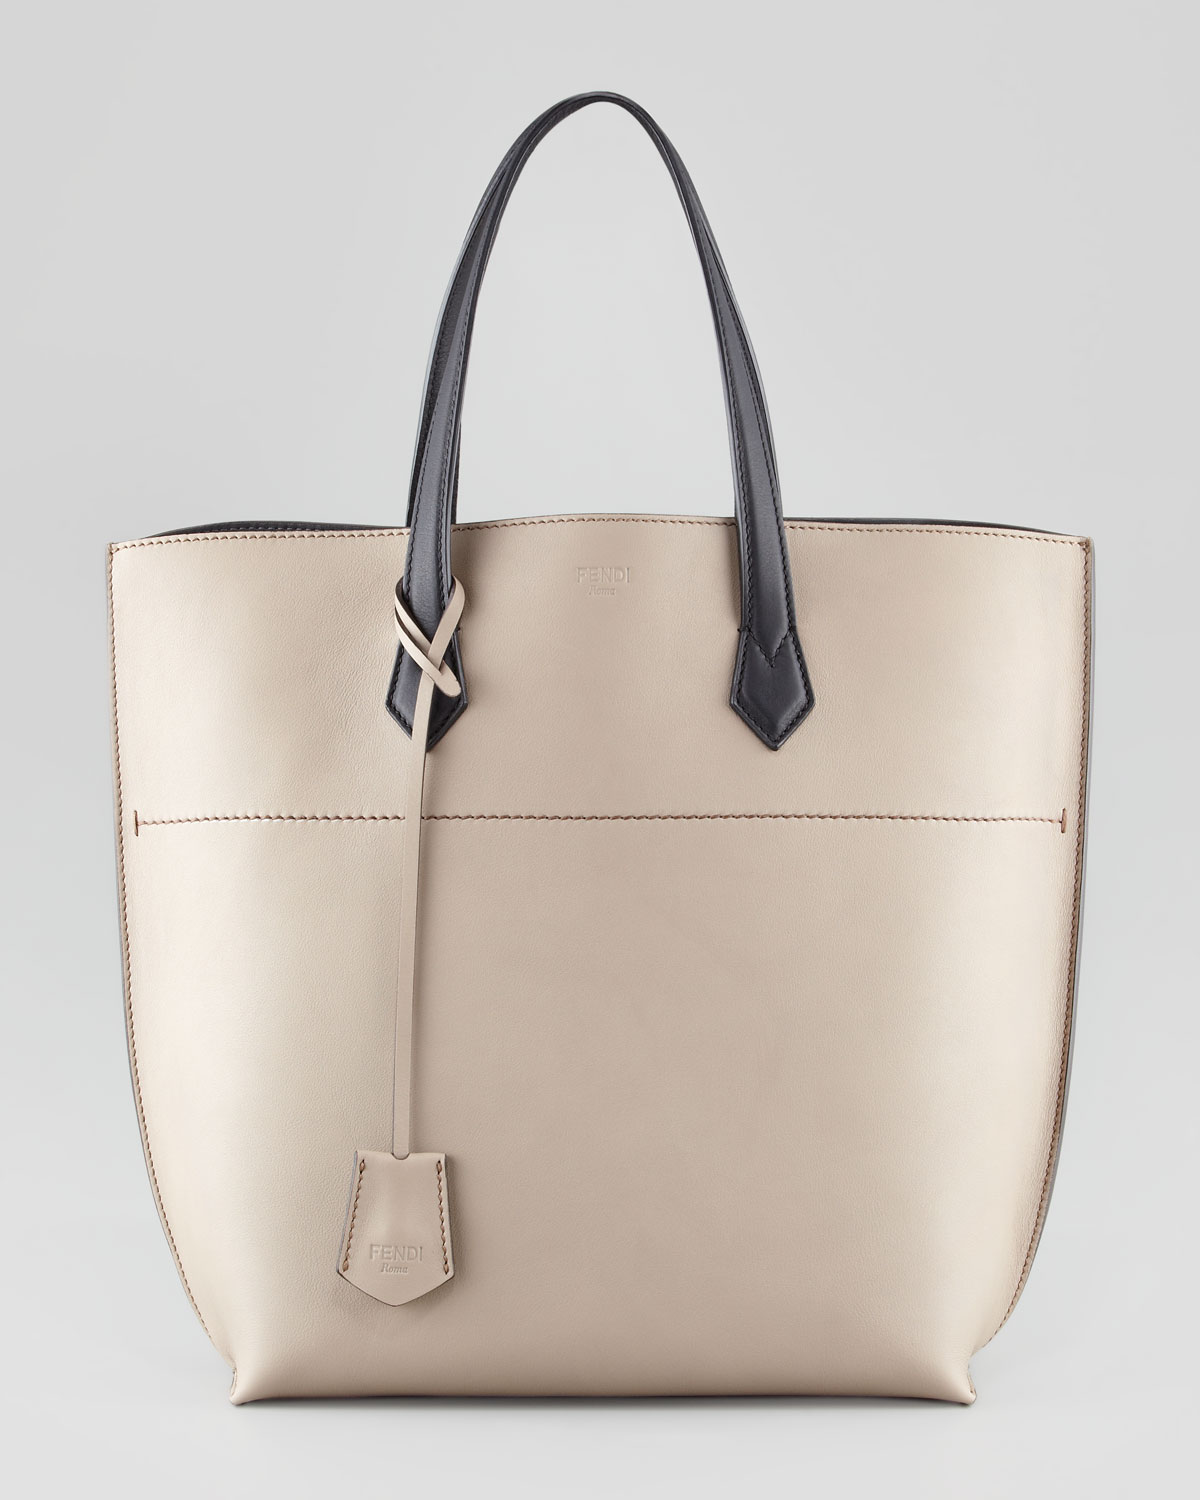 75223fb56eb ... cheapest lyst fendi leather shopping tote bag in natural 0026d b110e